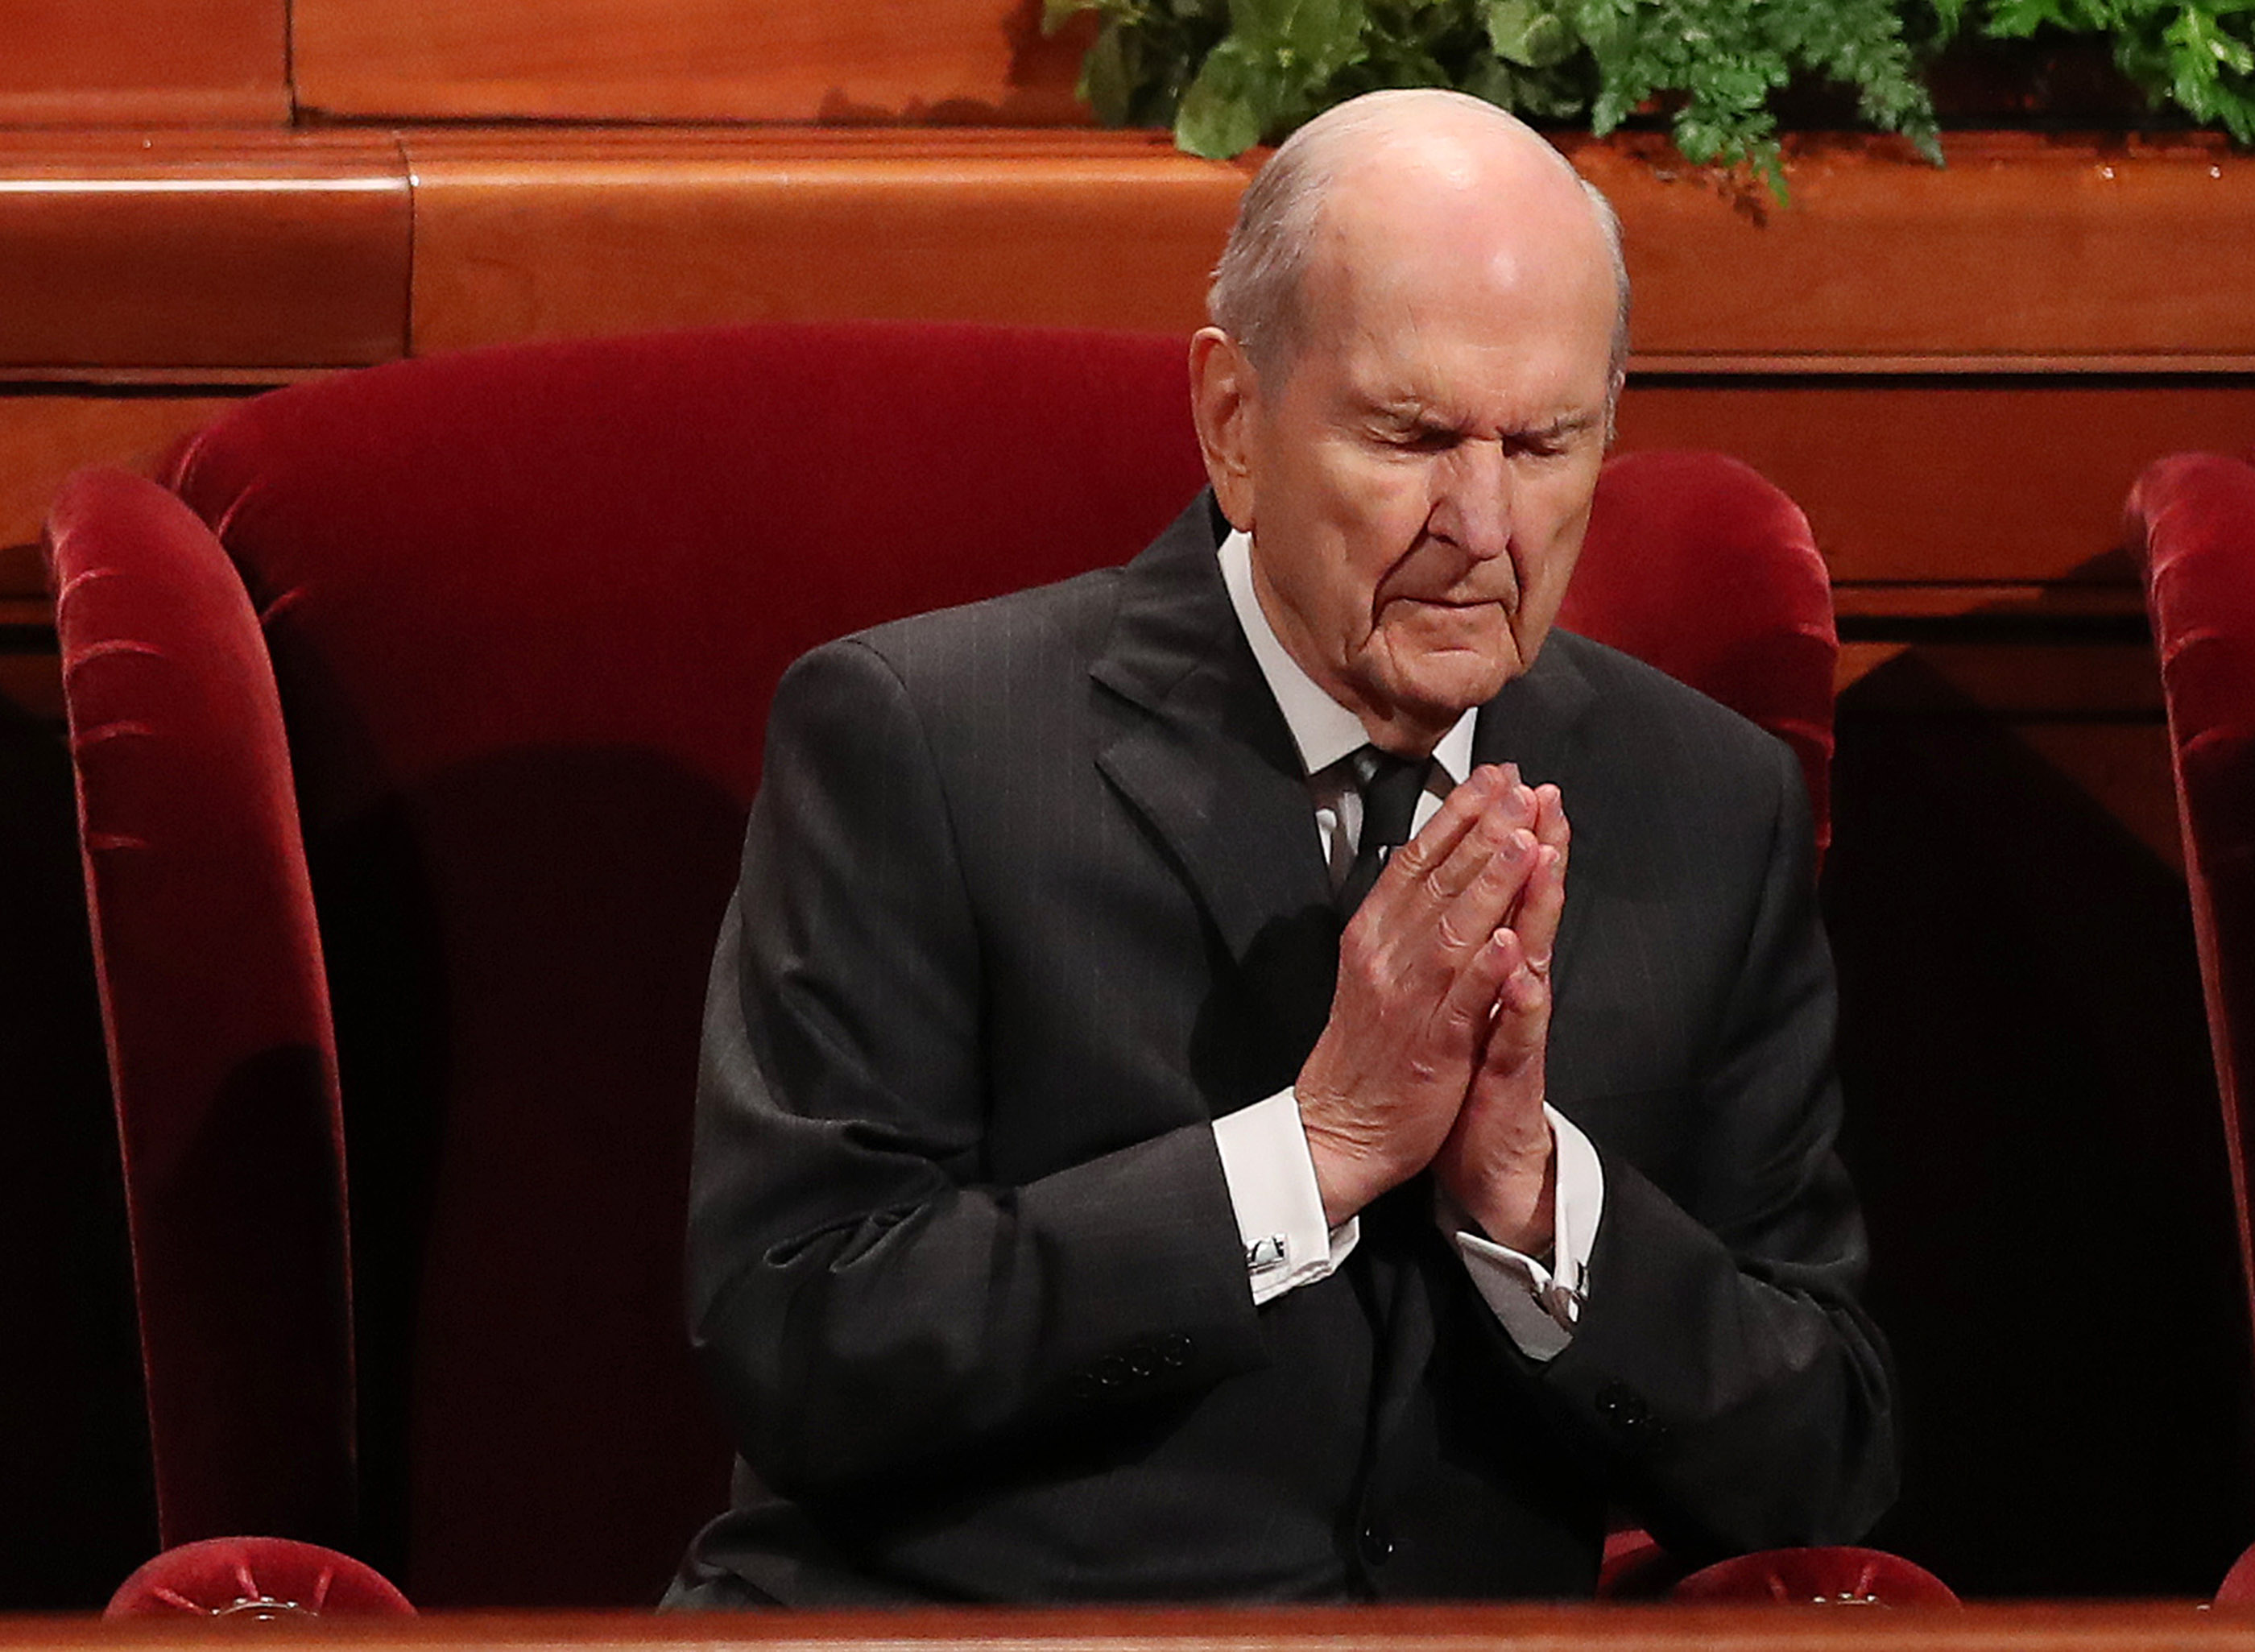 President Russell M. Nelson of The Church of Jesus Christ of Latter-day Saints, listens to the opening prayer during the 188th Semiannual General Conference of The Church of Jesus Christ of Latter-day Saints in Salt Lake City on Saturday, Oct. 6, 2018.